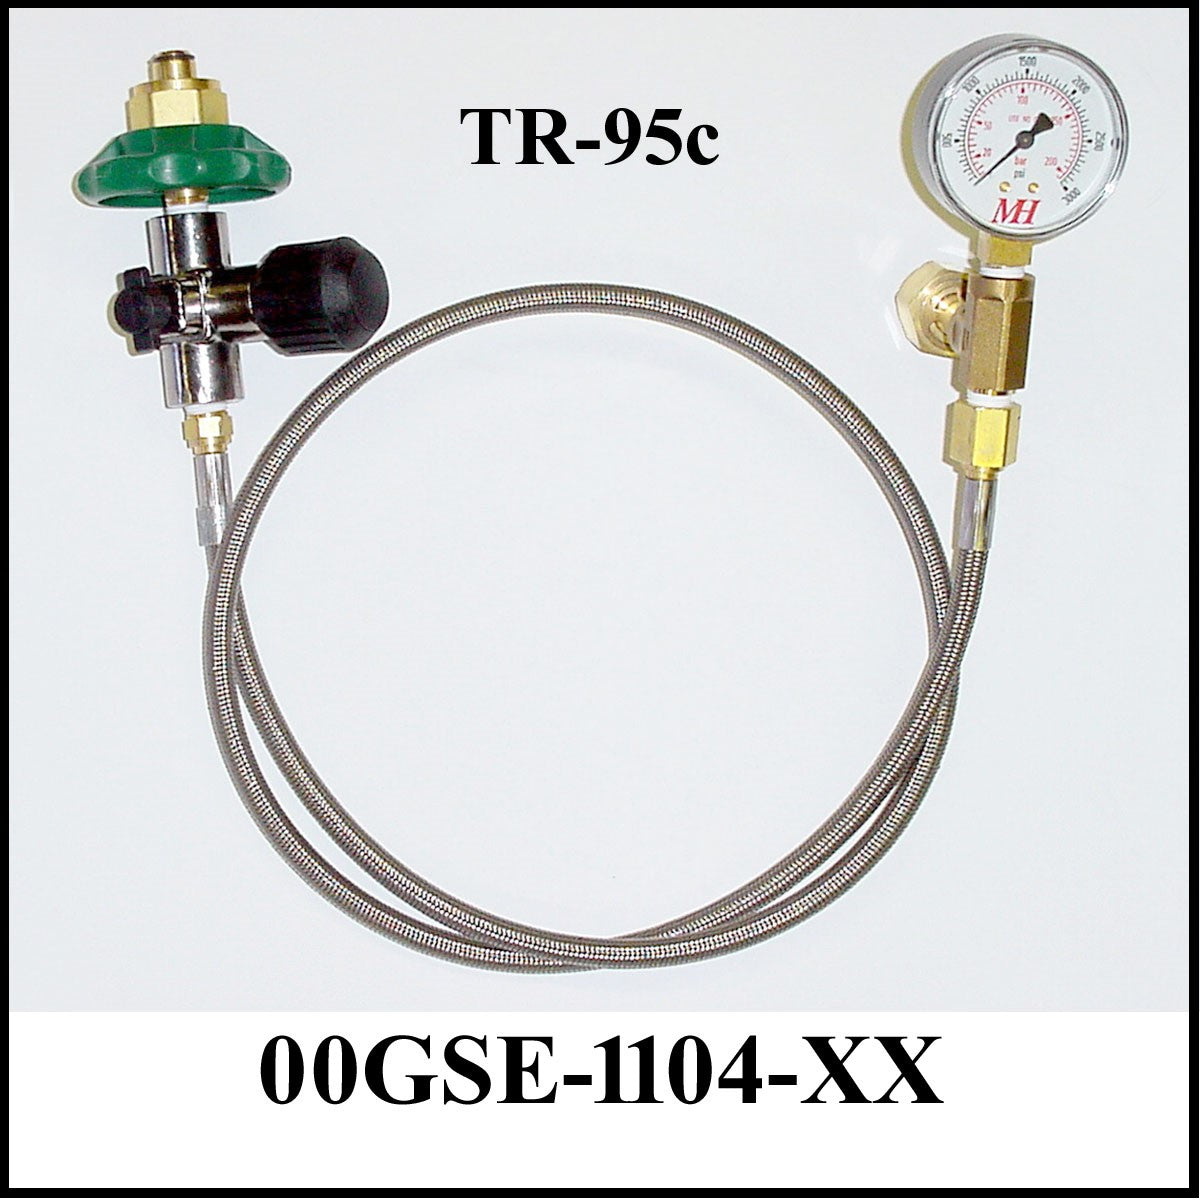 Mountain High Transfilling Hose for Adjustable Flow Regulator Bottles